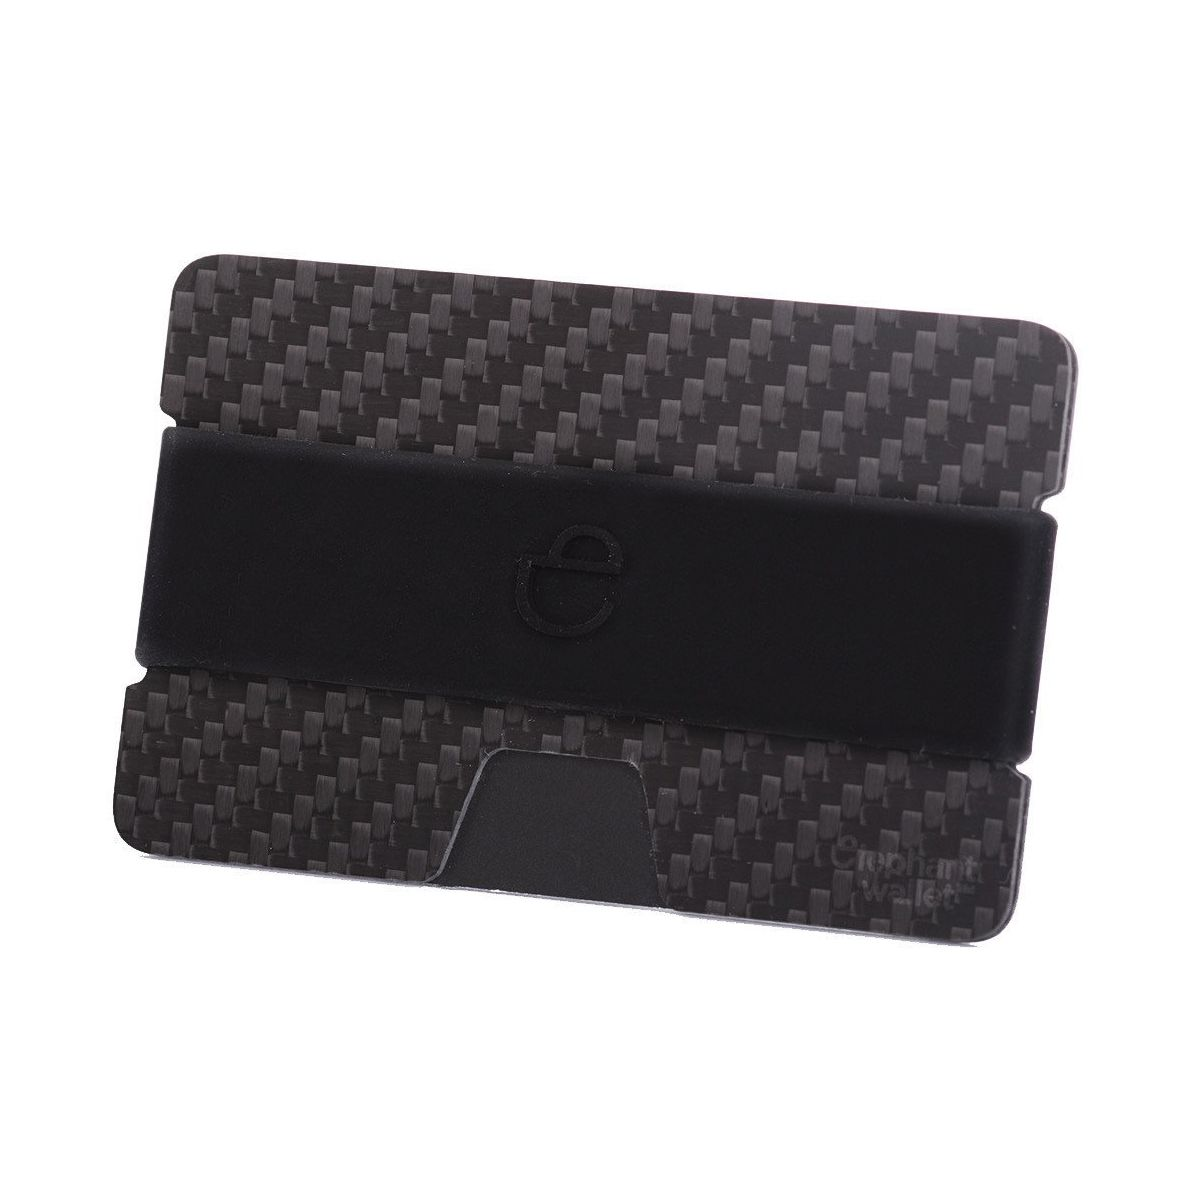 elephant Minimalist Carbon Fiber Wallet with Silicone Strap - Carbon/Black